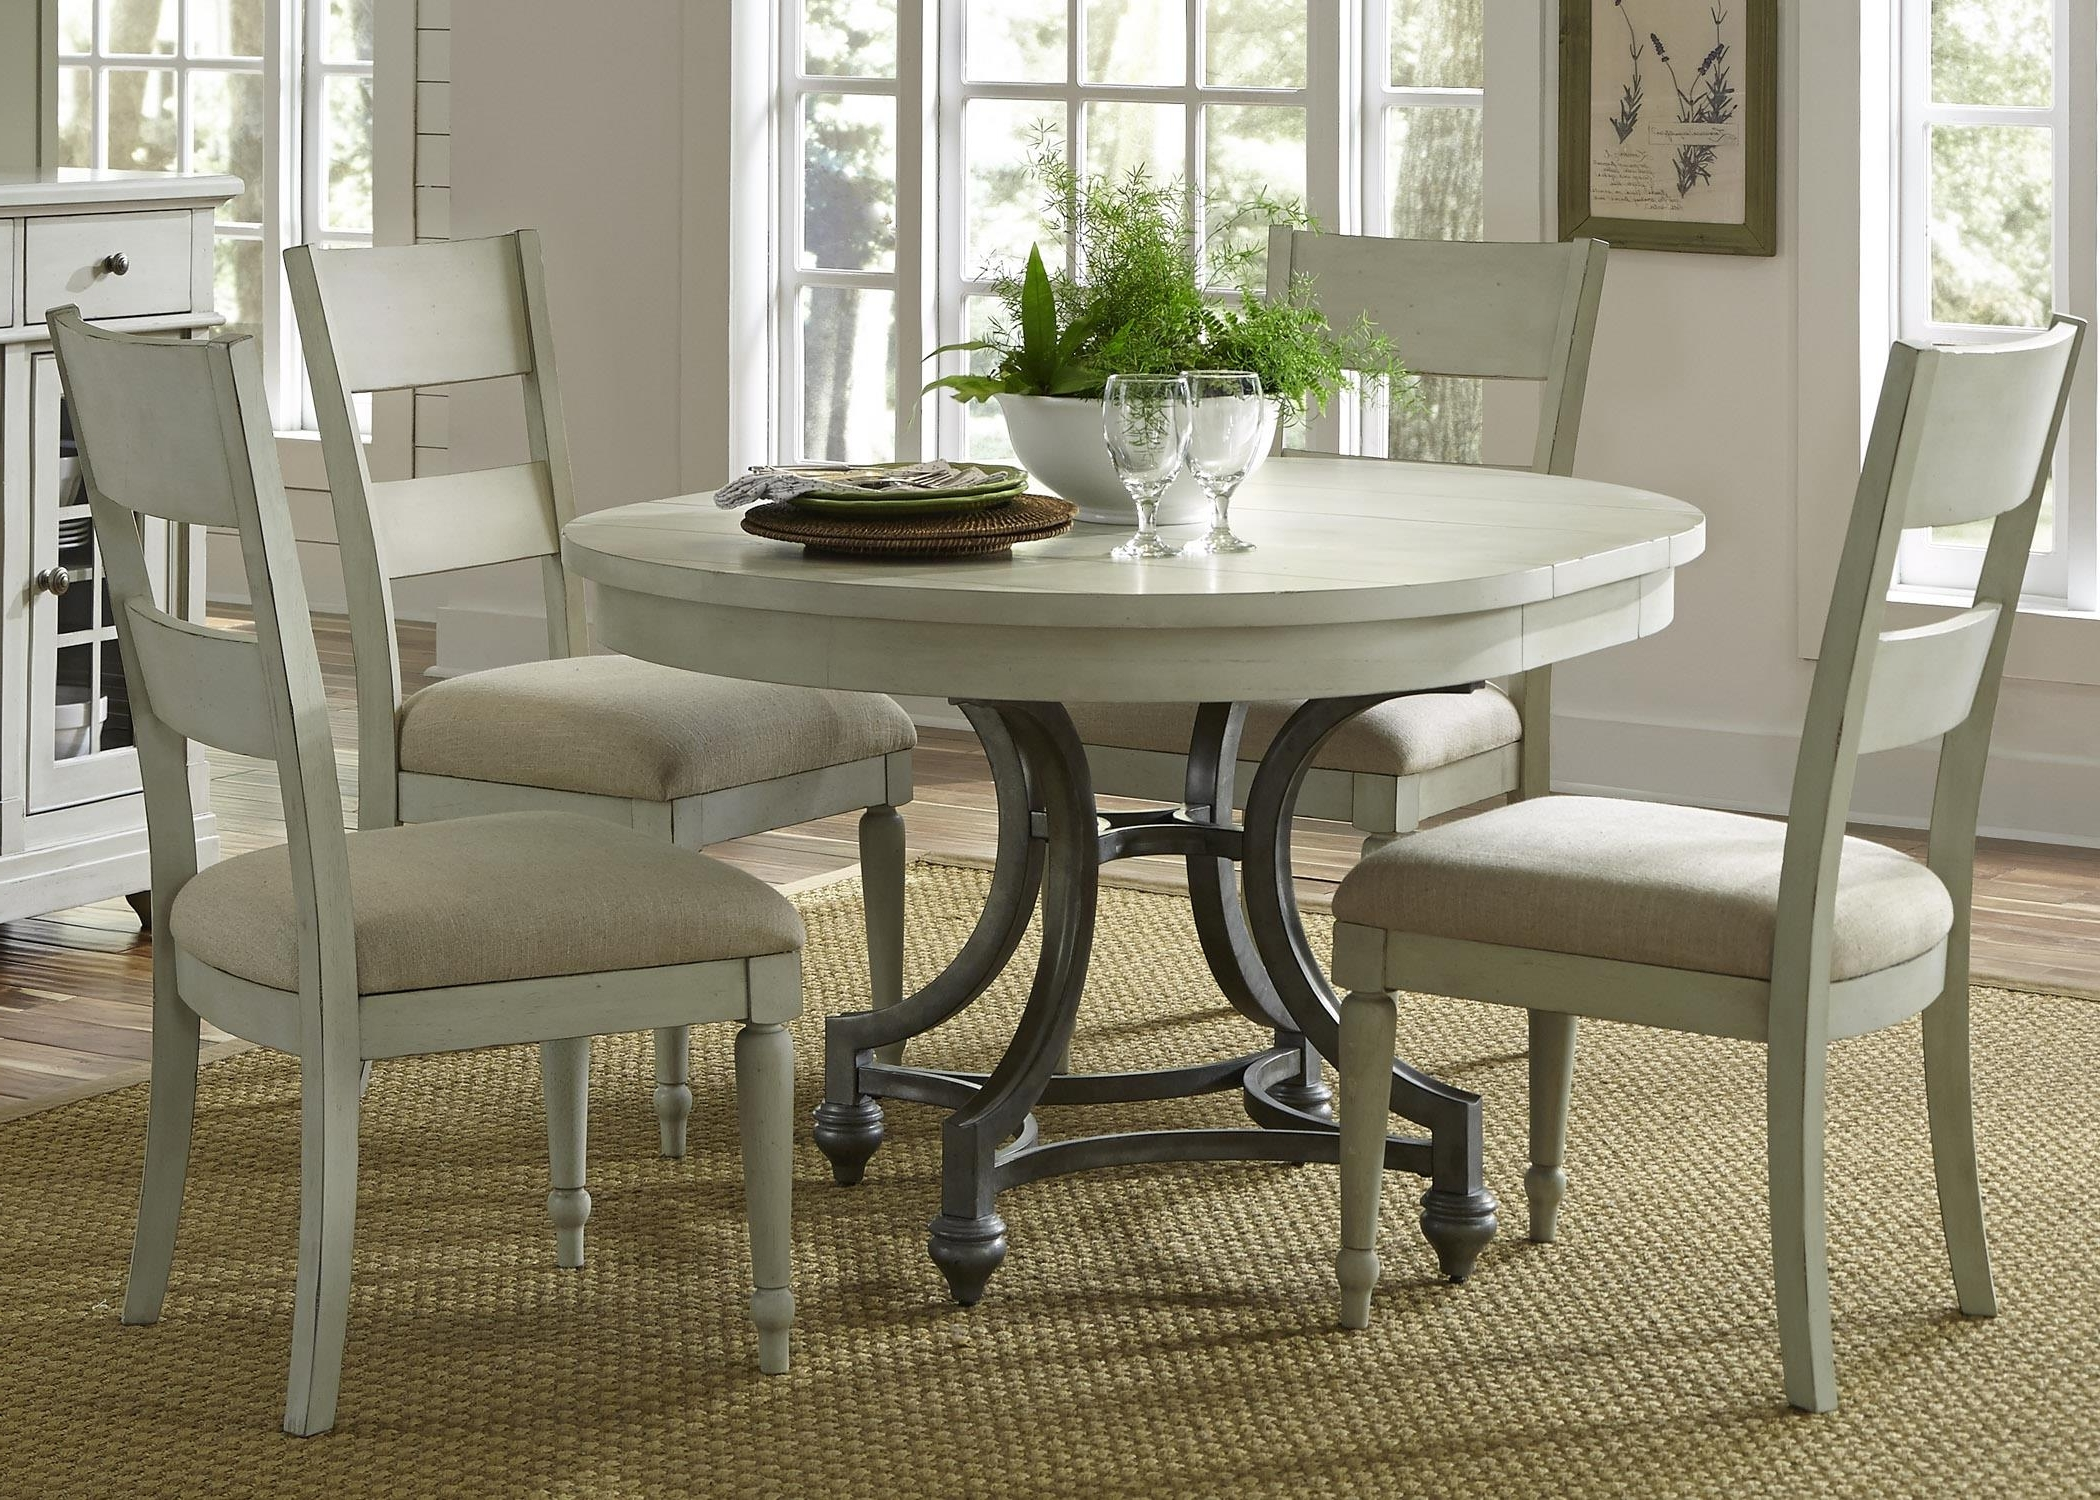 Most Recent Liberty Furniture Harbor View Round Table With 4 Slat Back Chairs For Jaxon 5 Piece Round Dining Sets With Upholstered Chairs (View 7 of 25)